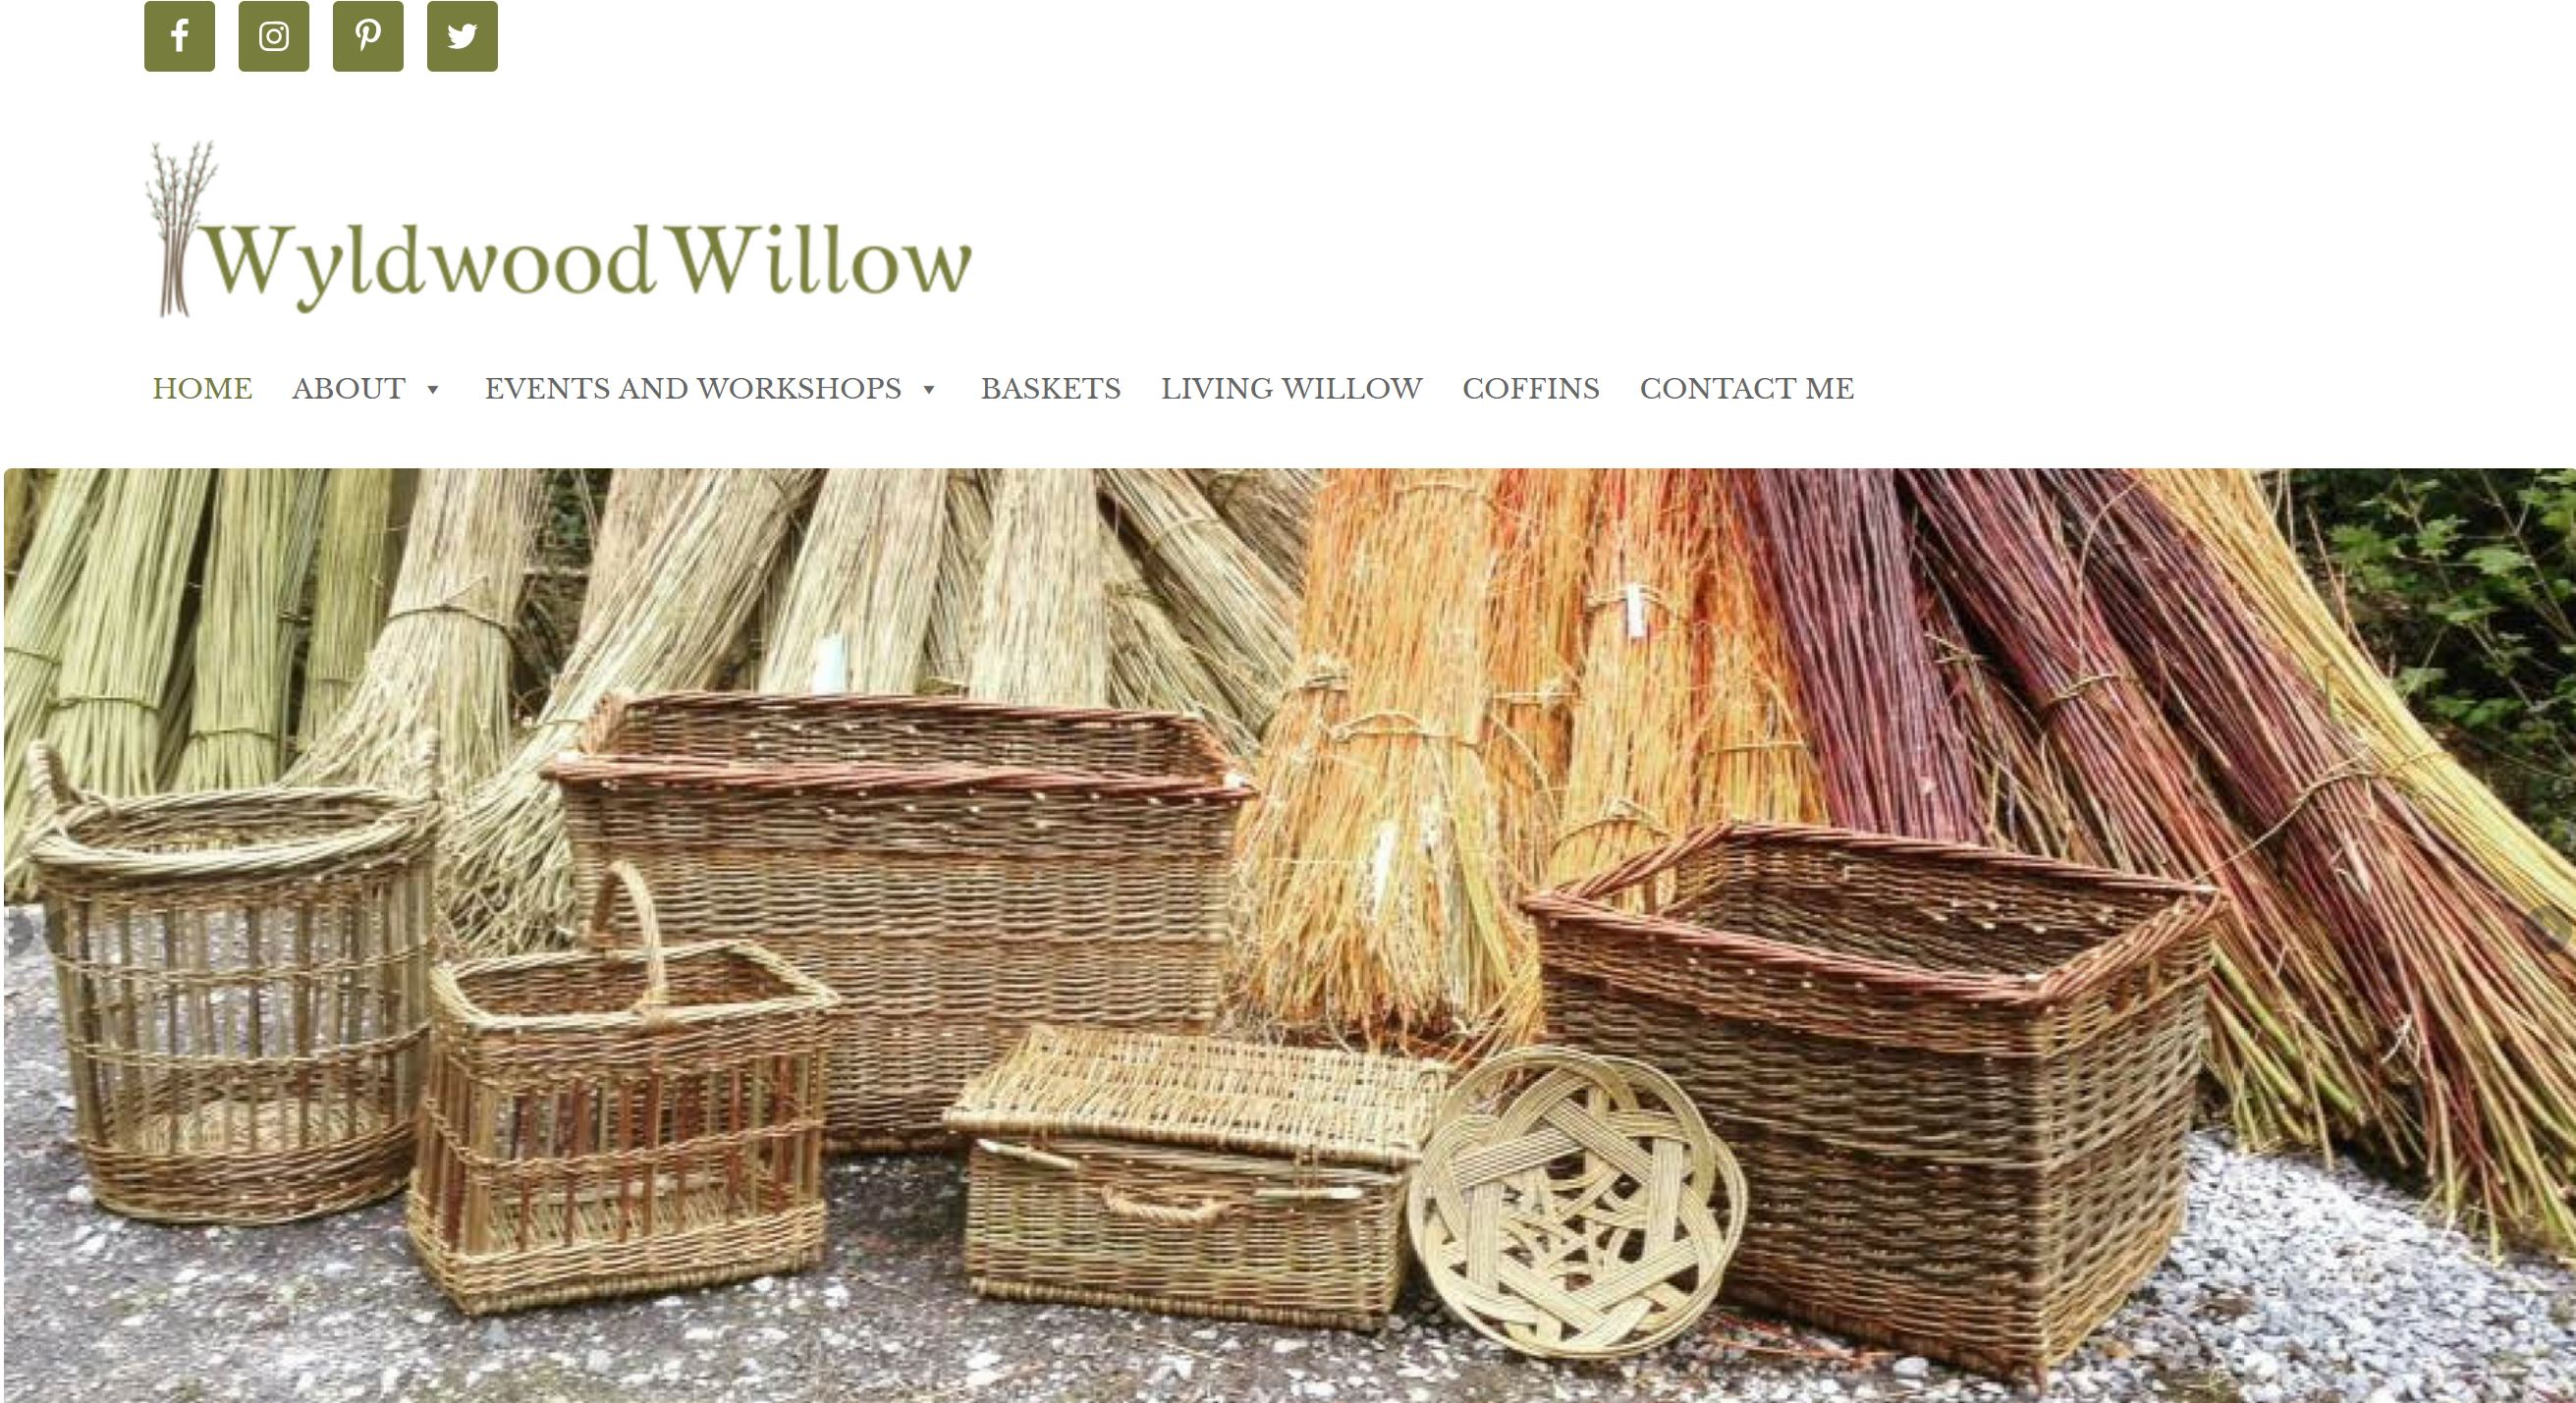 Wyldwood willow website snip